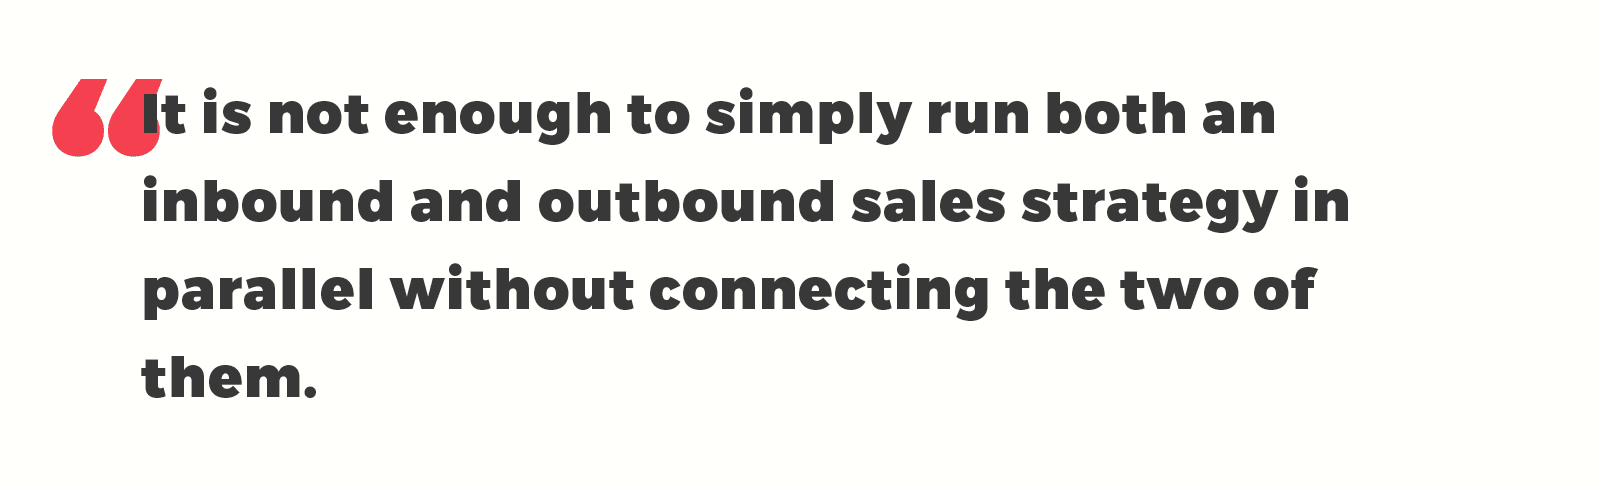 inbound and outbound sales